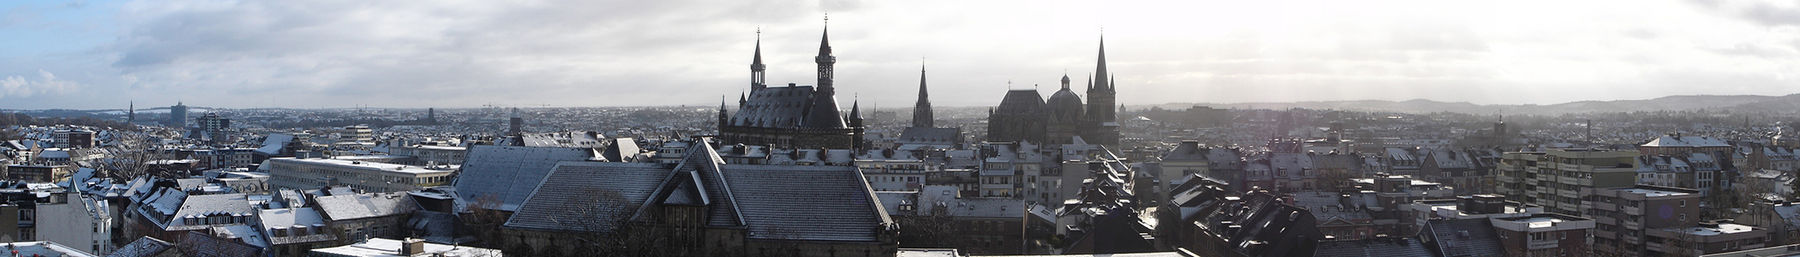 Aachen banner Winter Panorama.jpg